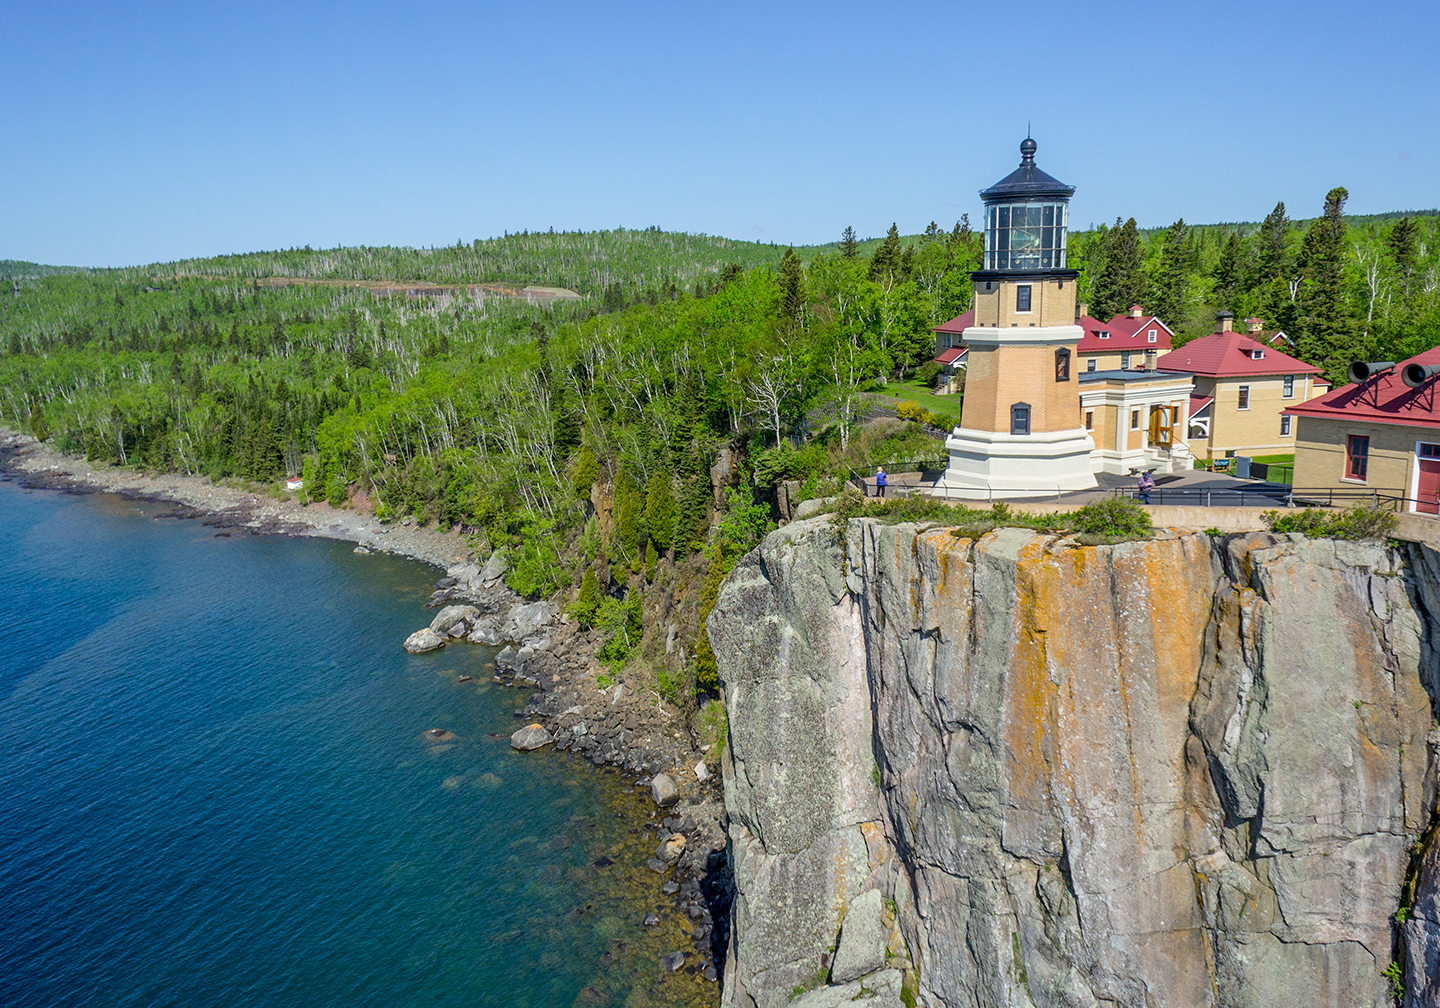 A lighthouse on a tall, gray cliff in Duluth, MN, with green forest behind it and the blue waters of Lake Superior beneath it.